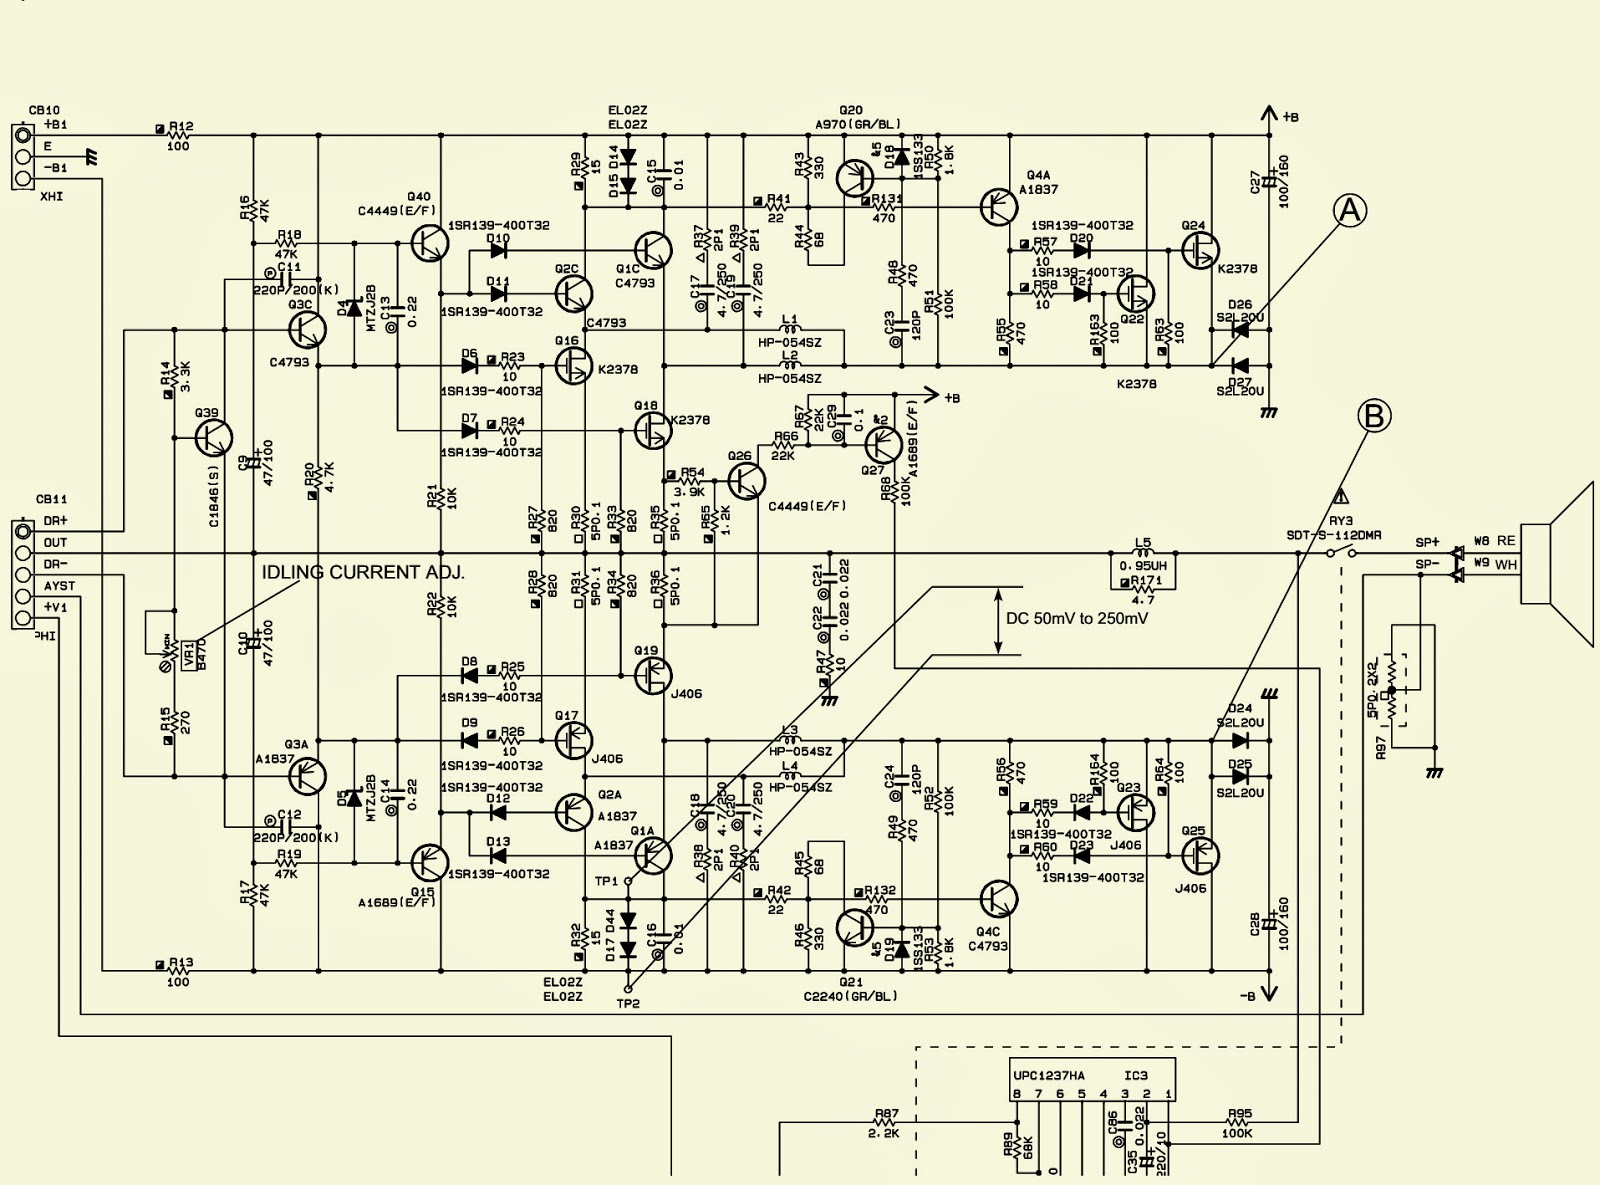 A Car Audio  lifier Wiring furthermore Klipsch Subwoofer Sub 10 Schematic furthermore Car Tweeter Speaker Wiring Diagram furthermore Wiring Diagram For 1 8 Stereo Jack likewise Car Audio Wiring. on 5 1 car lifier wiring diagram